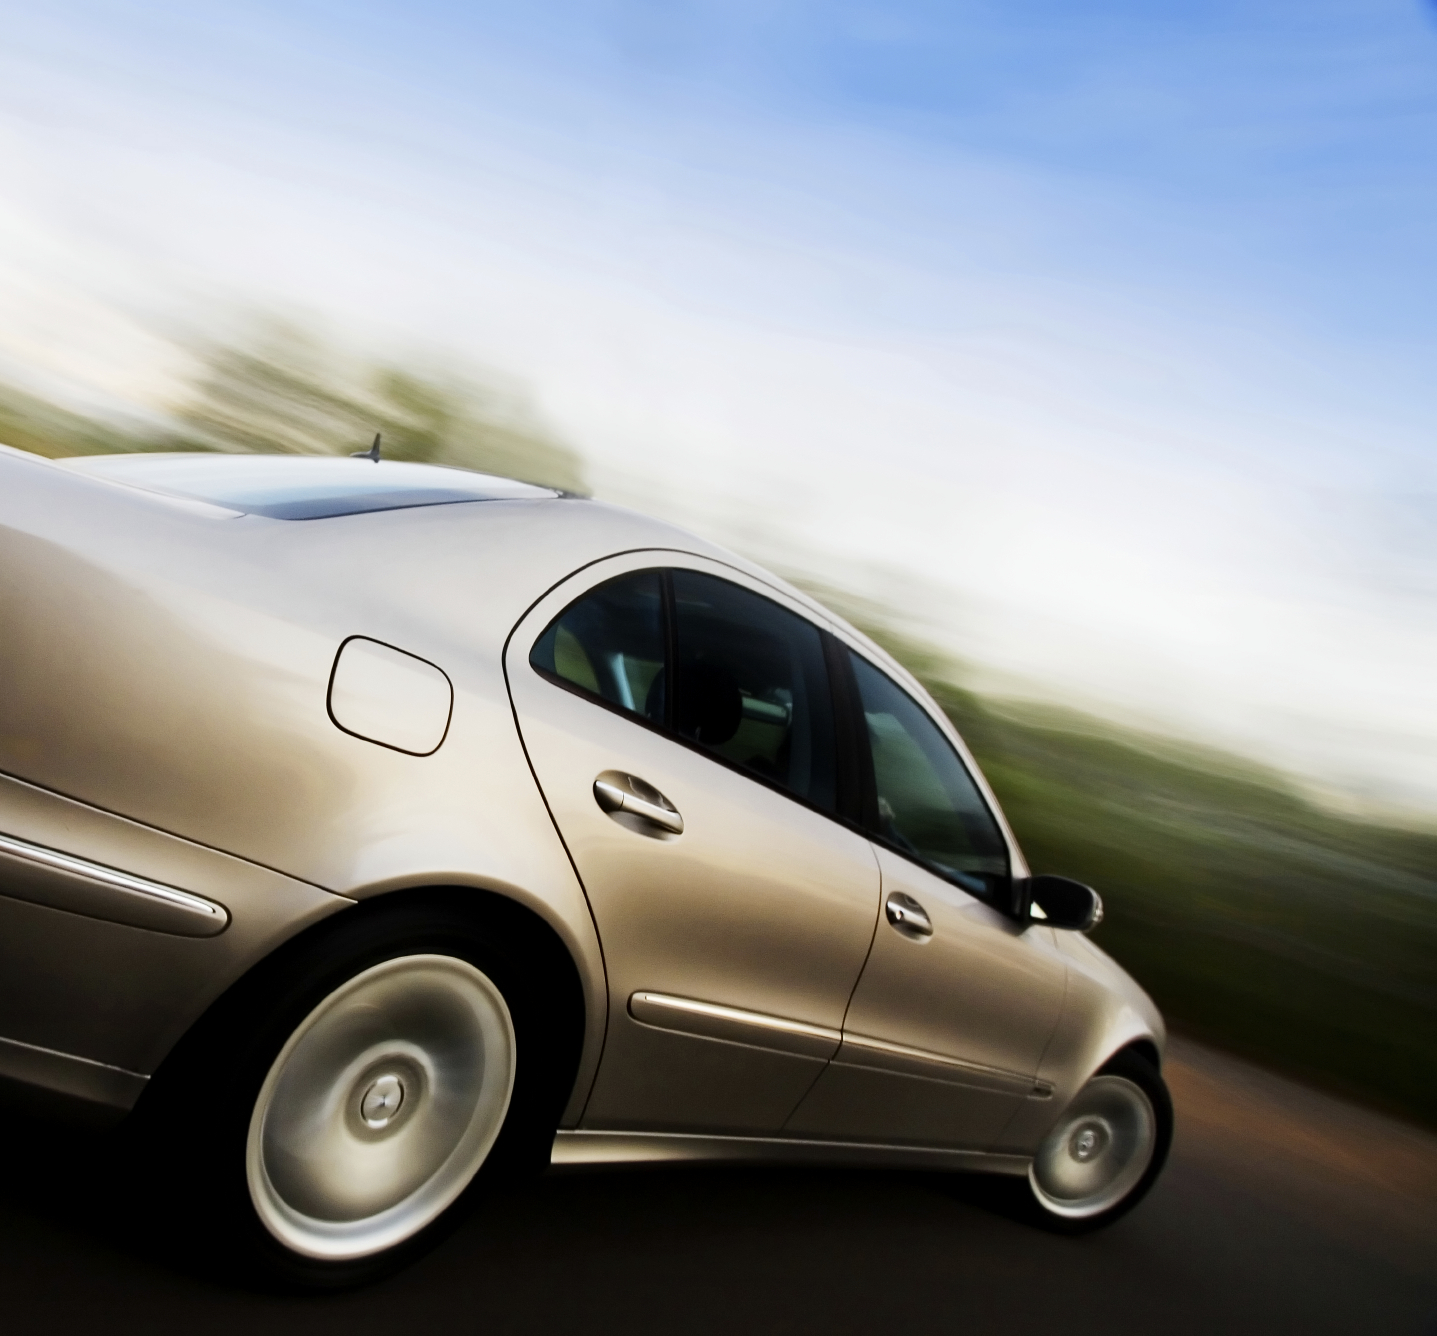 Auto insurance is a critical component of an asset protection program.